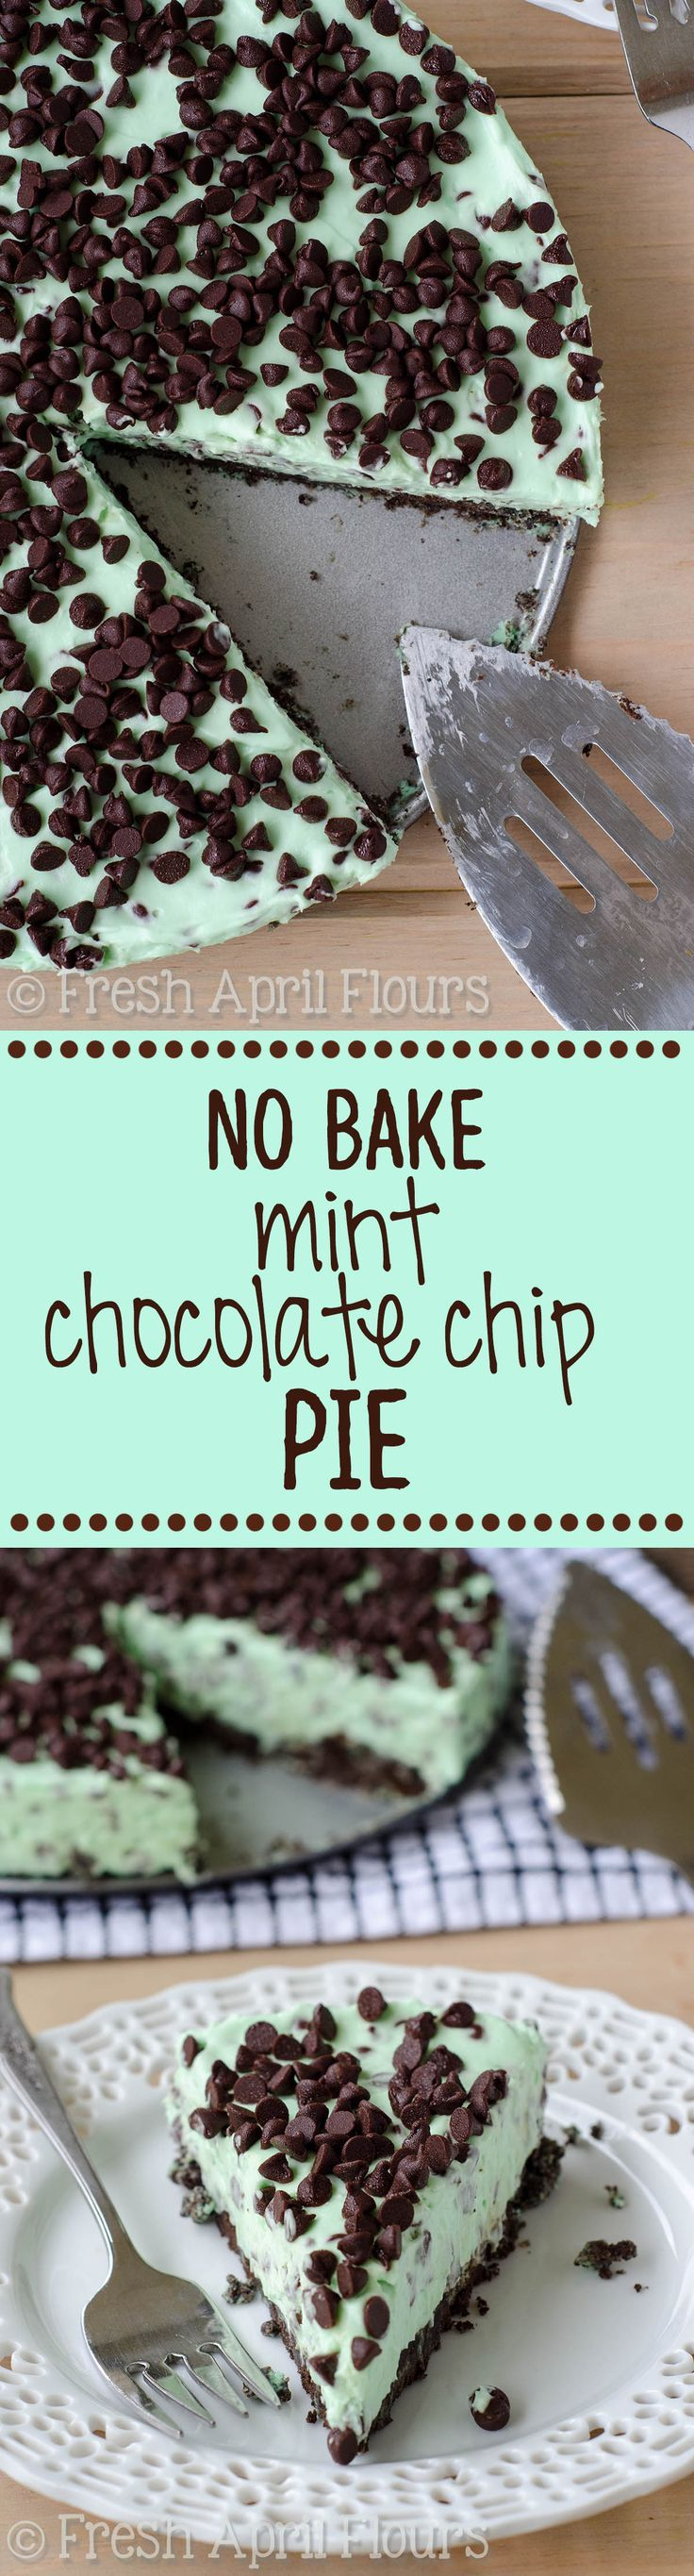 No Bake Mint Chocolate Chip Pie is part of Desserts - Creamy, minty filling dotted with mini chocolate chips all on top of a crunchy mint Oreo cookie crust